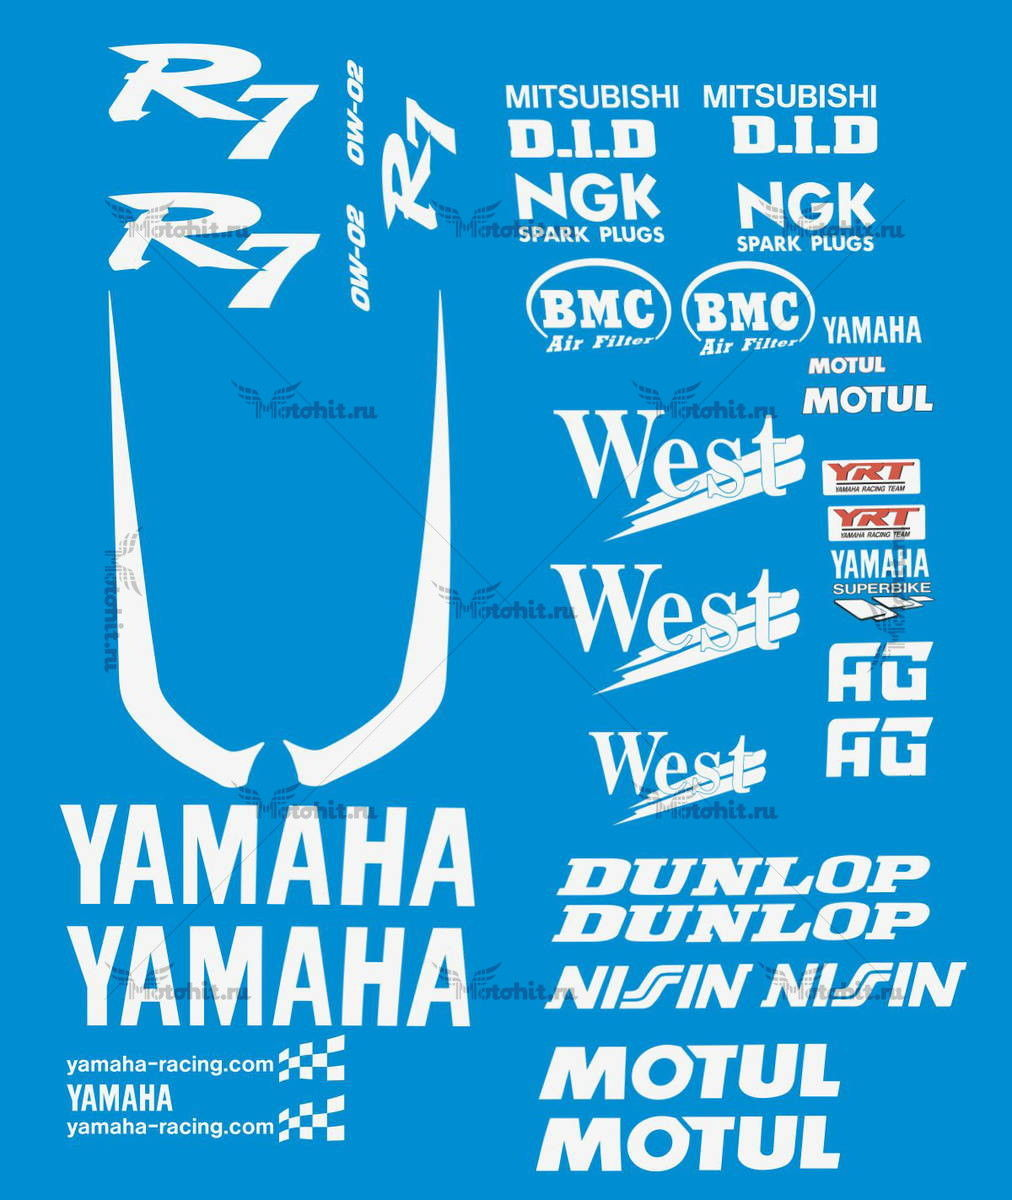 Комплект наклеек Yamaha R7 WEST